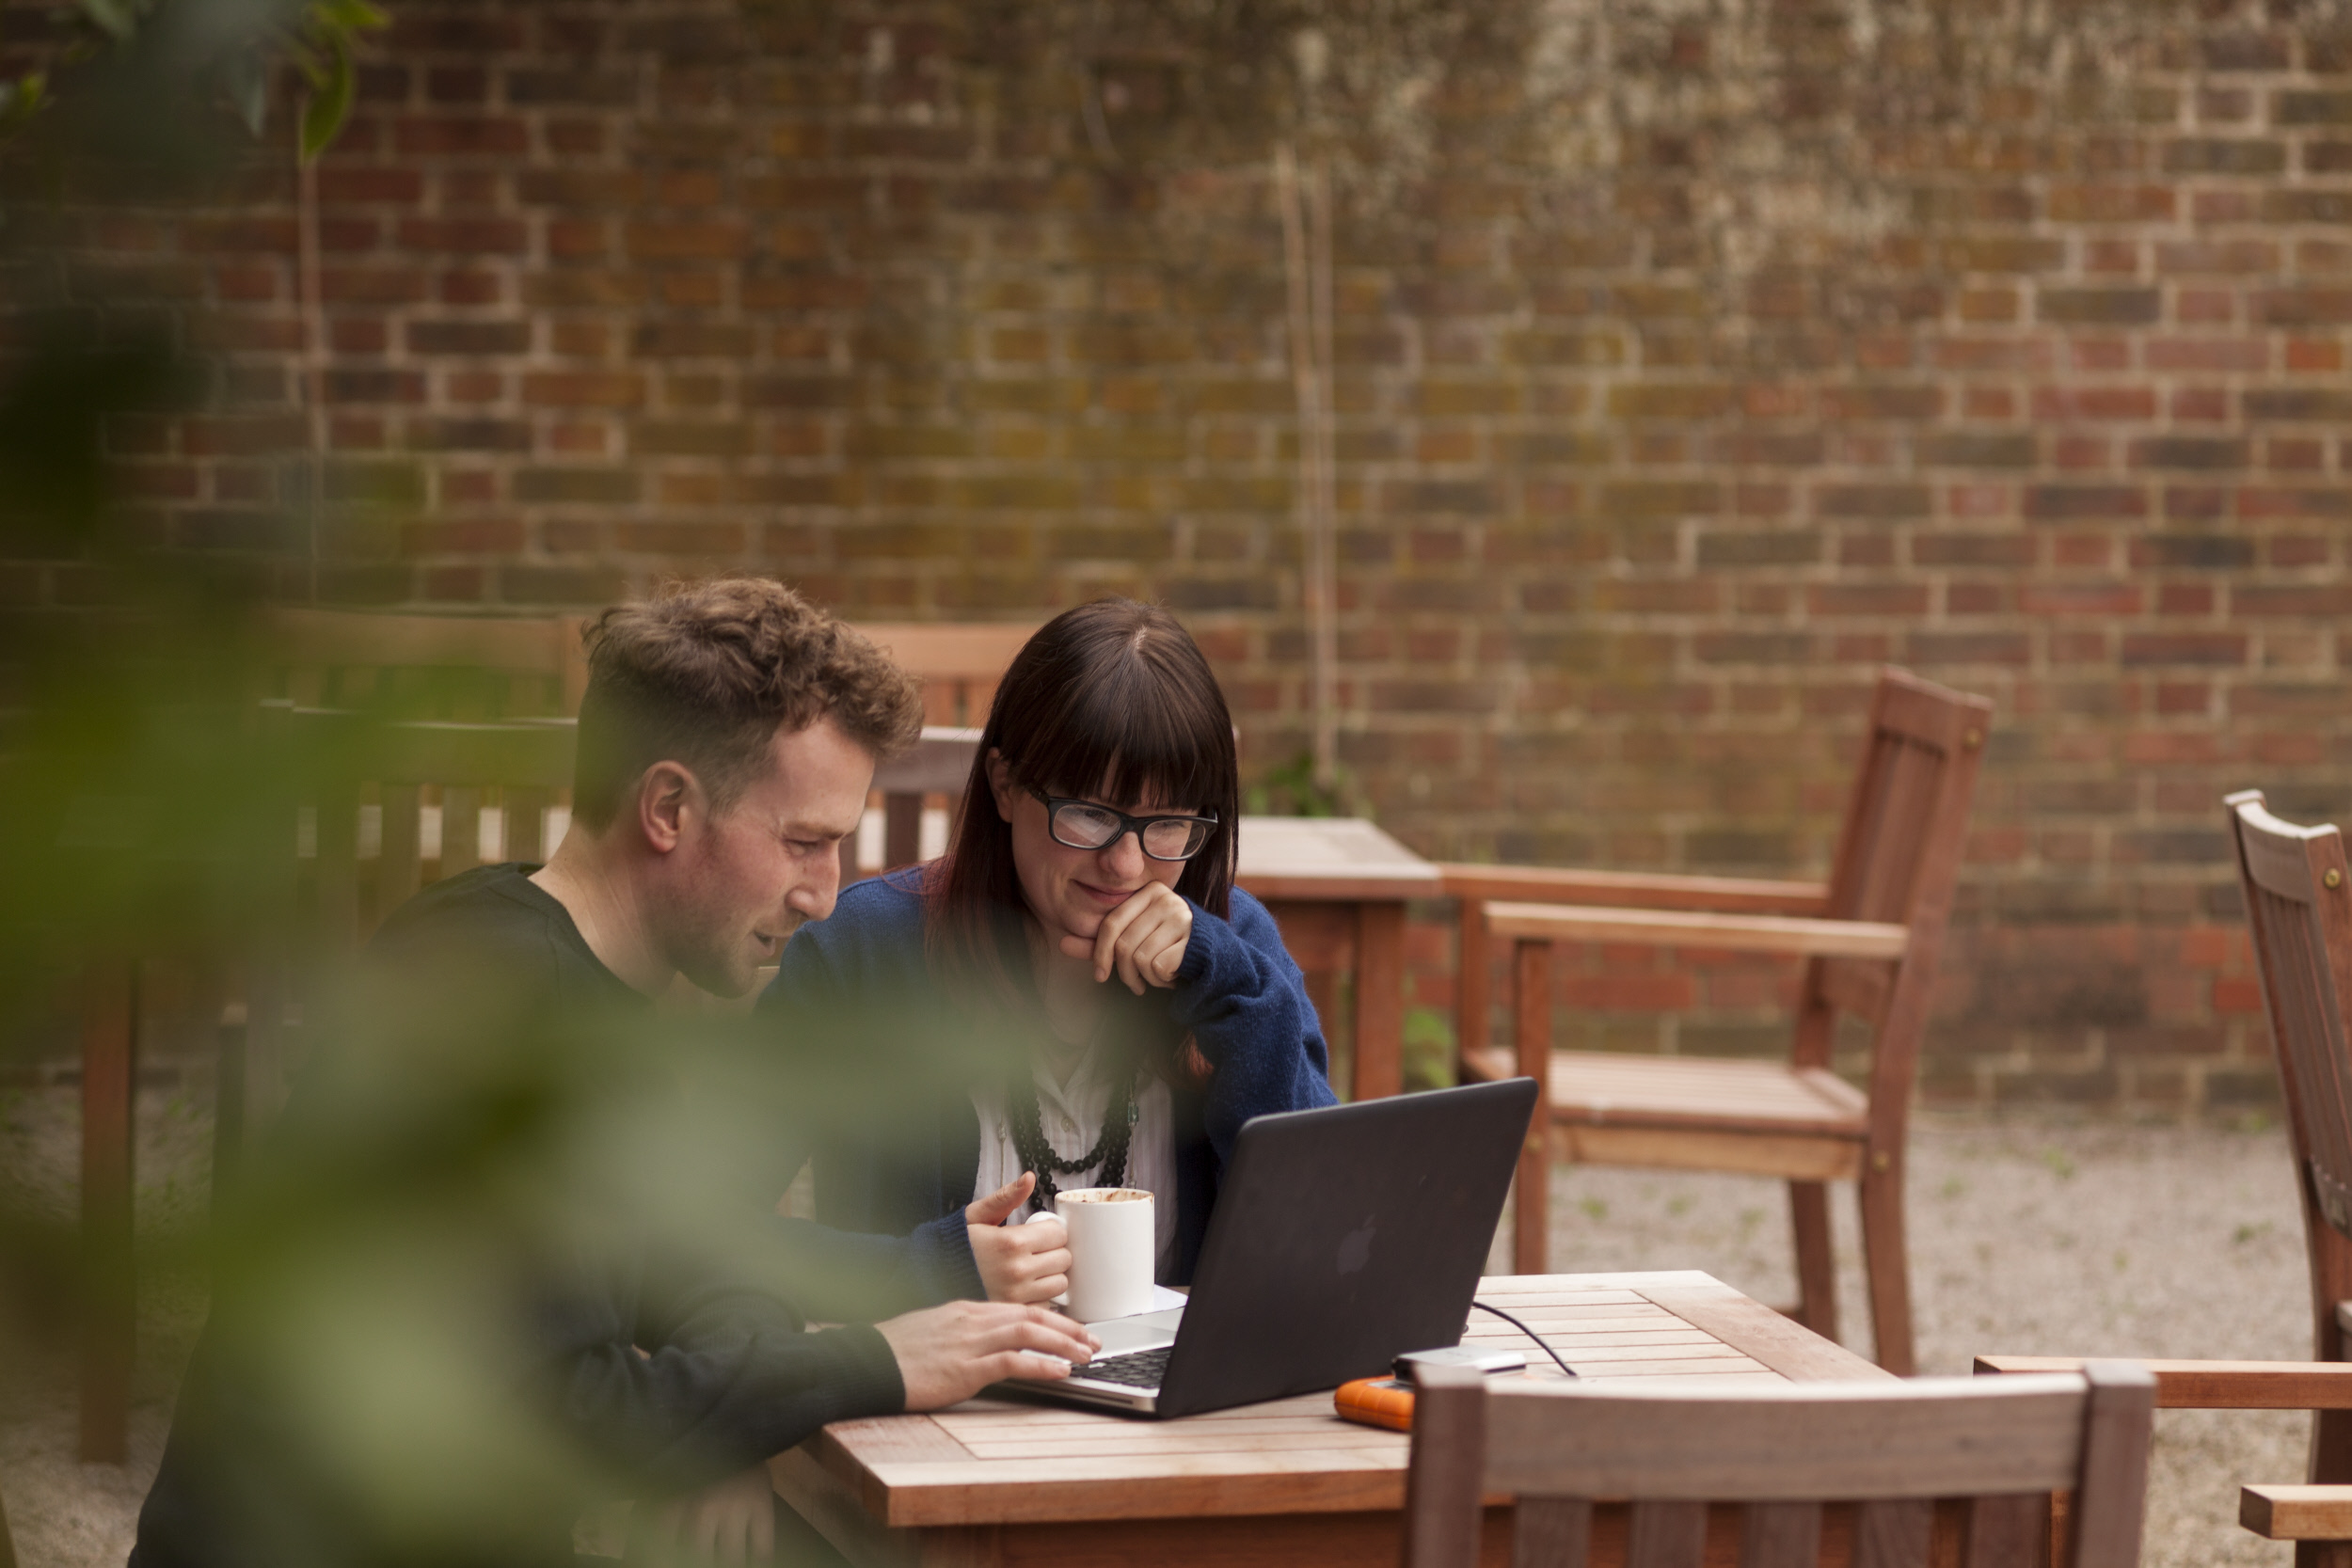 National Trust employees working outside with a laptop and coffee